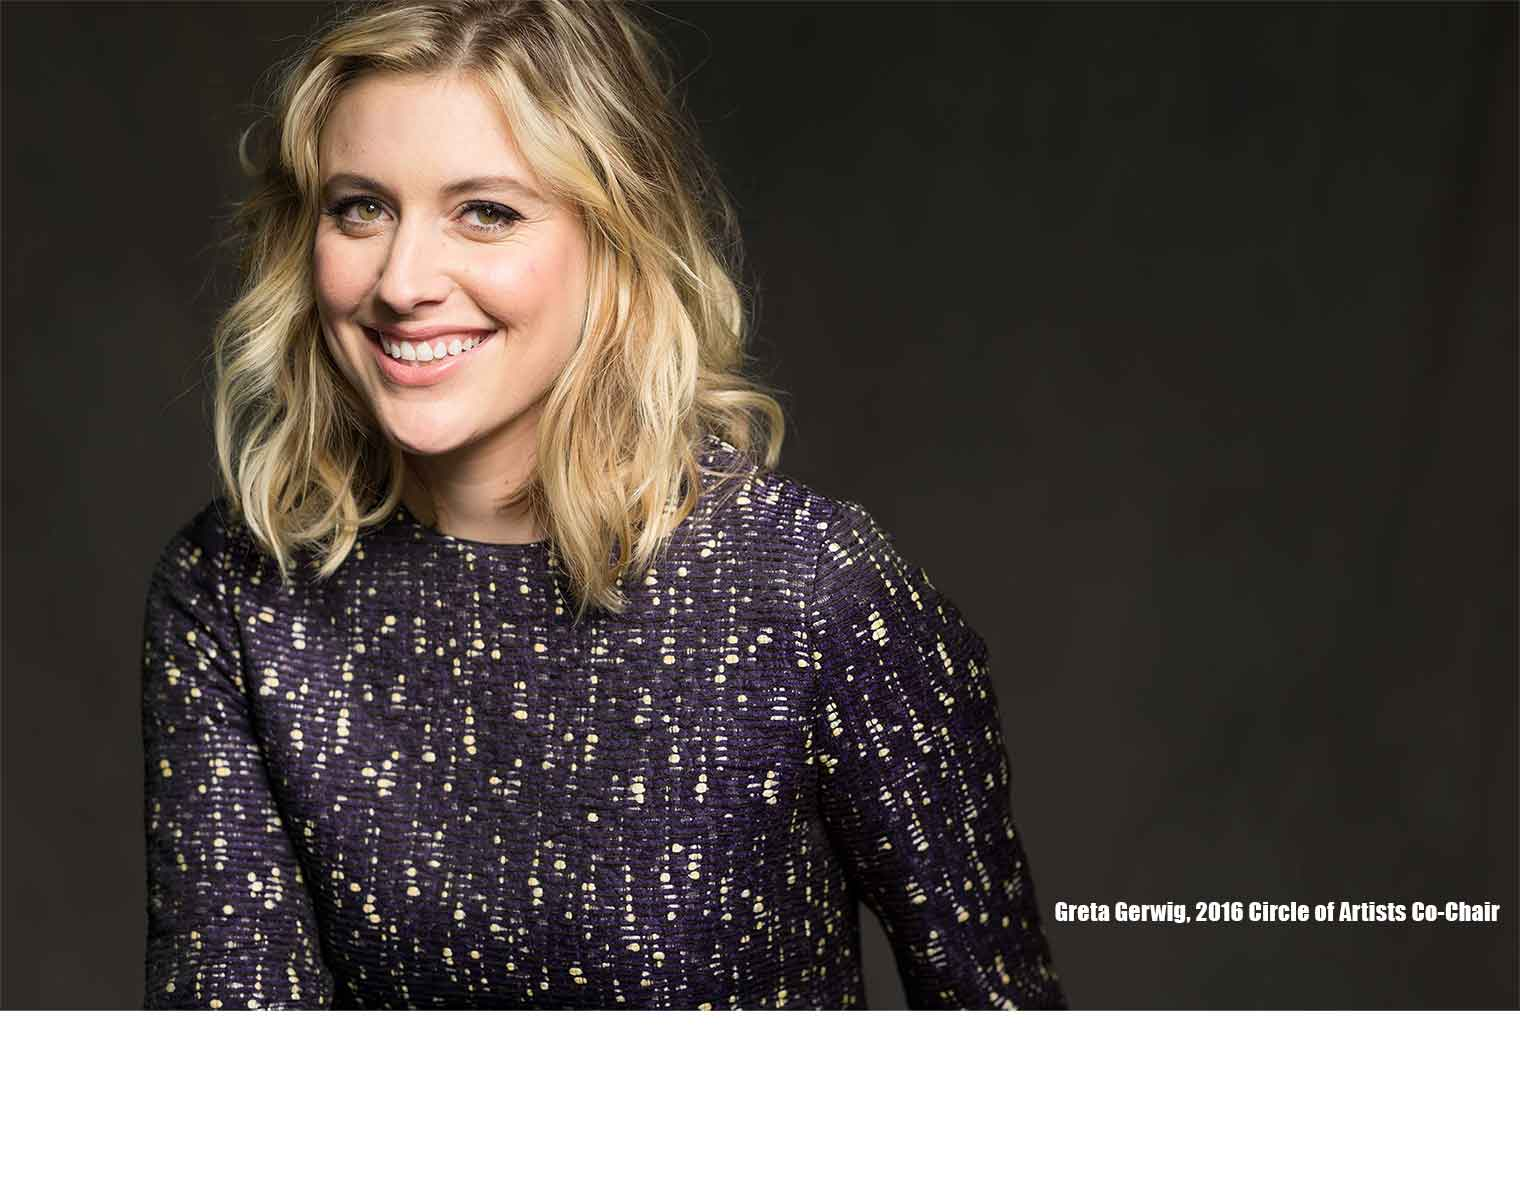 CIRCLE OF ARTISTS- Greta Gerwig, 2016 Circle of Artists Co-Chair